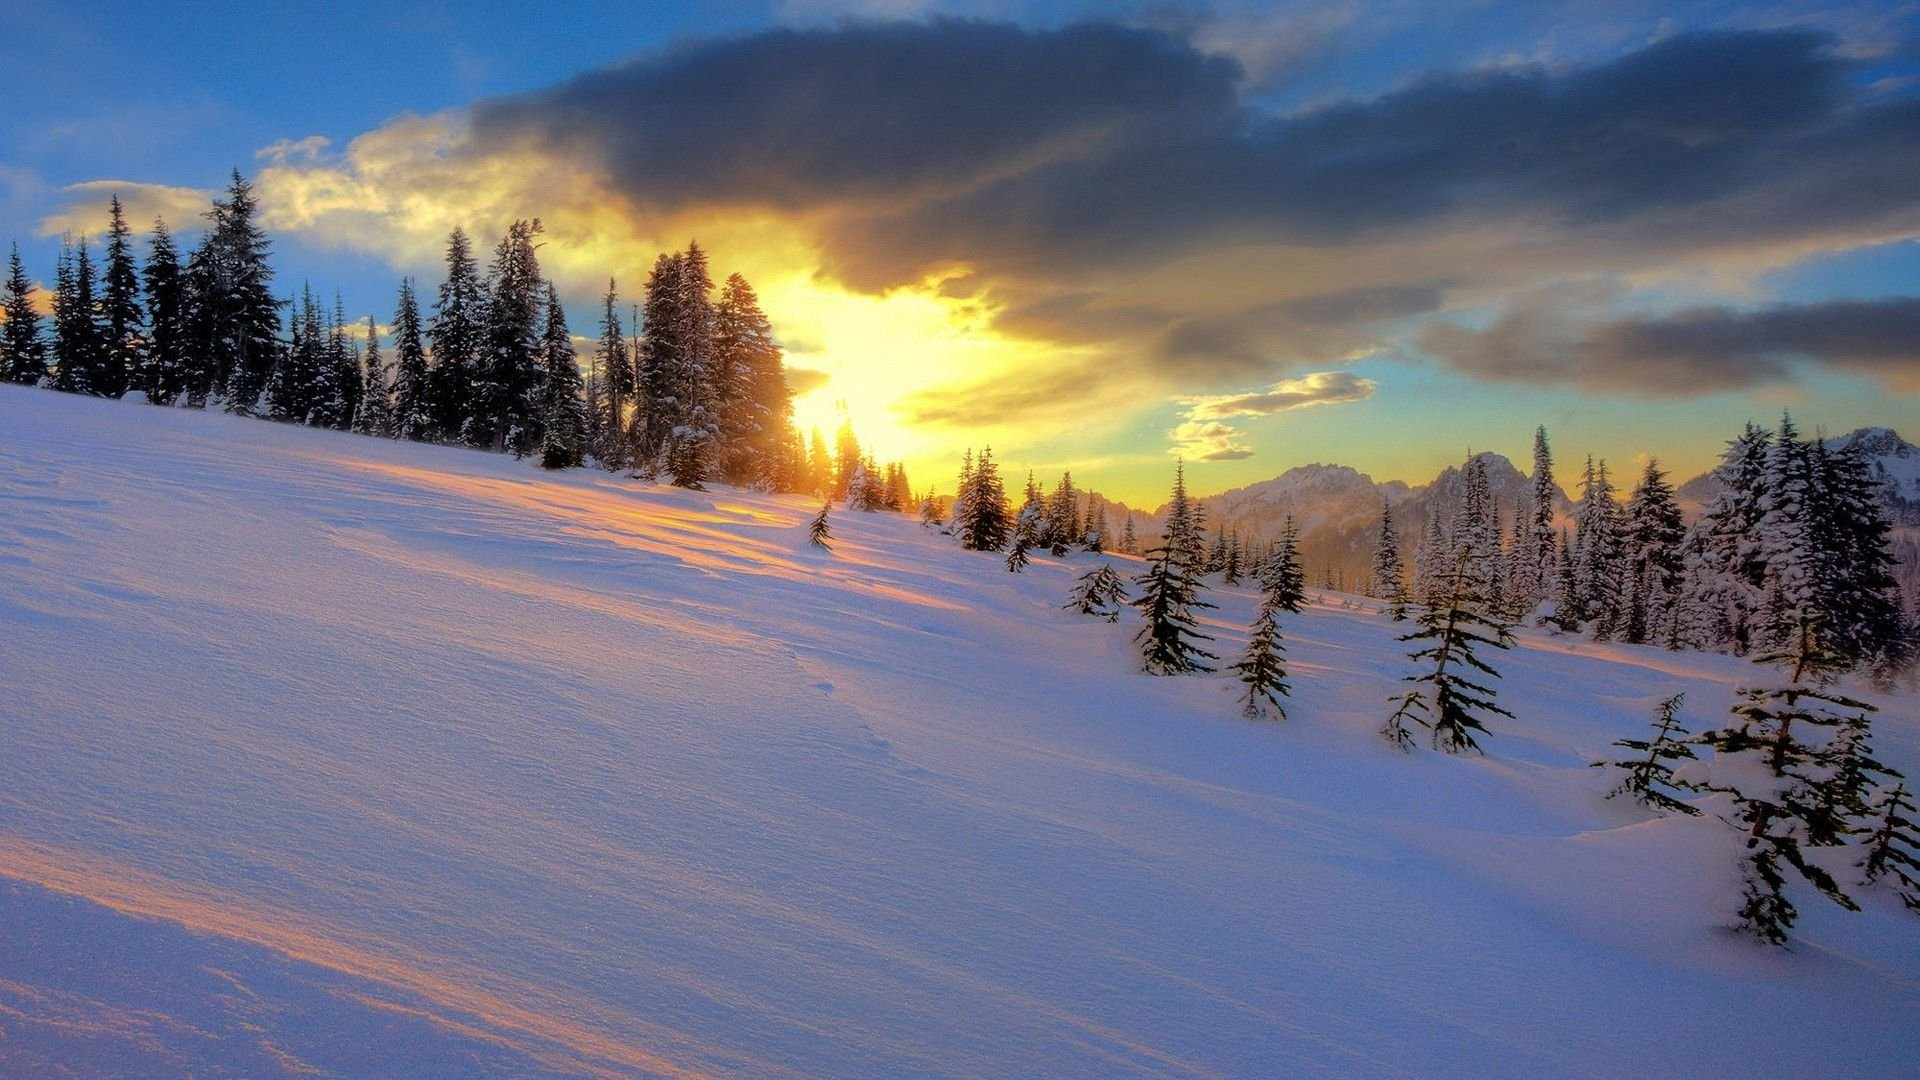 Snowy Hills In The Sunset - WallDevil